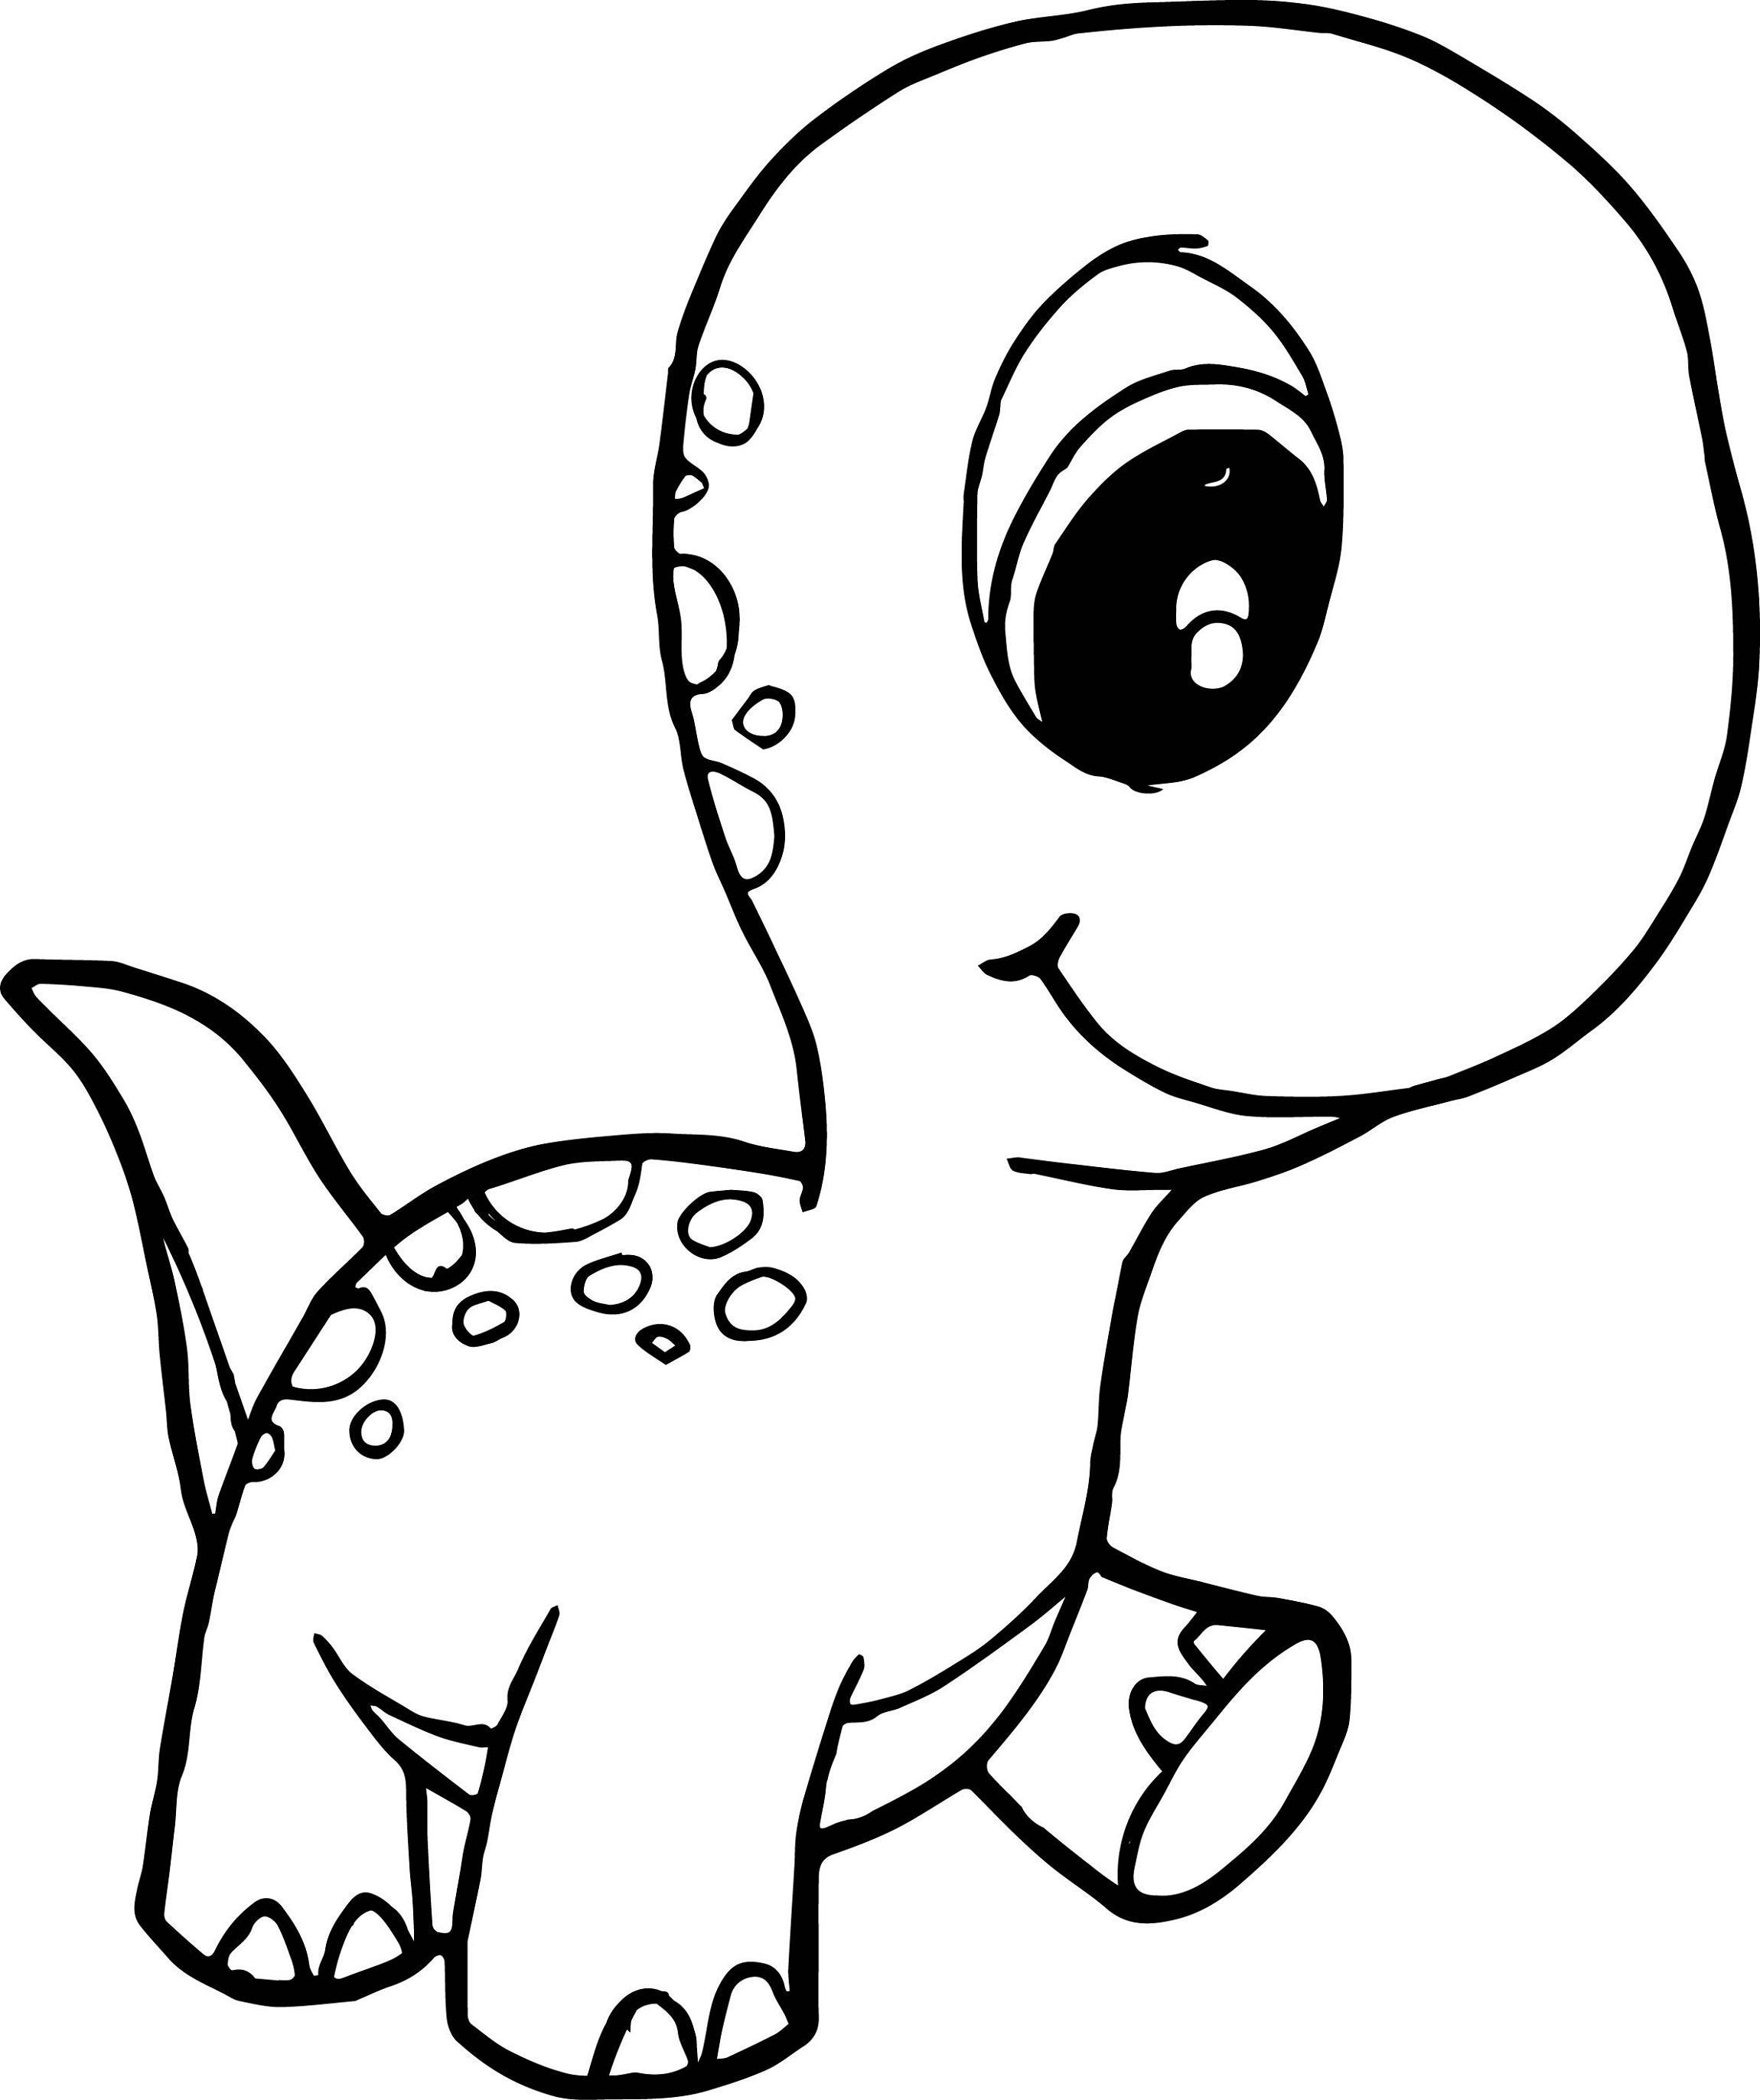 cartoon dinosaur coloring pictures triceratops cartoon dinosaur coloring pages sketch coloring dinosaur pictures cartoon